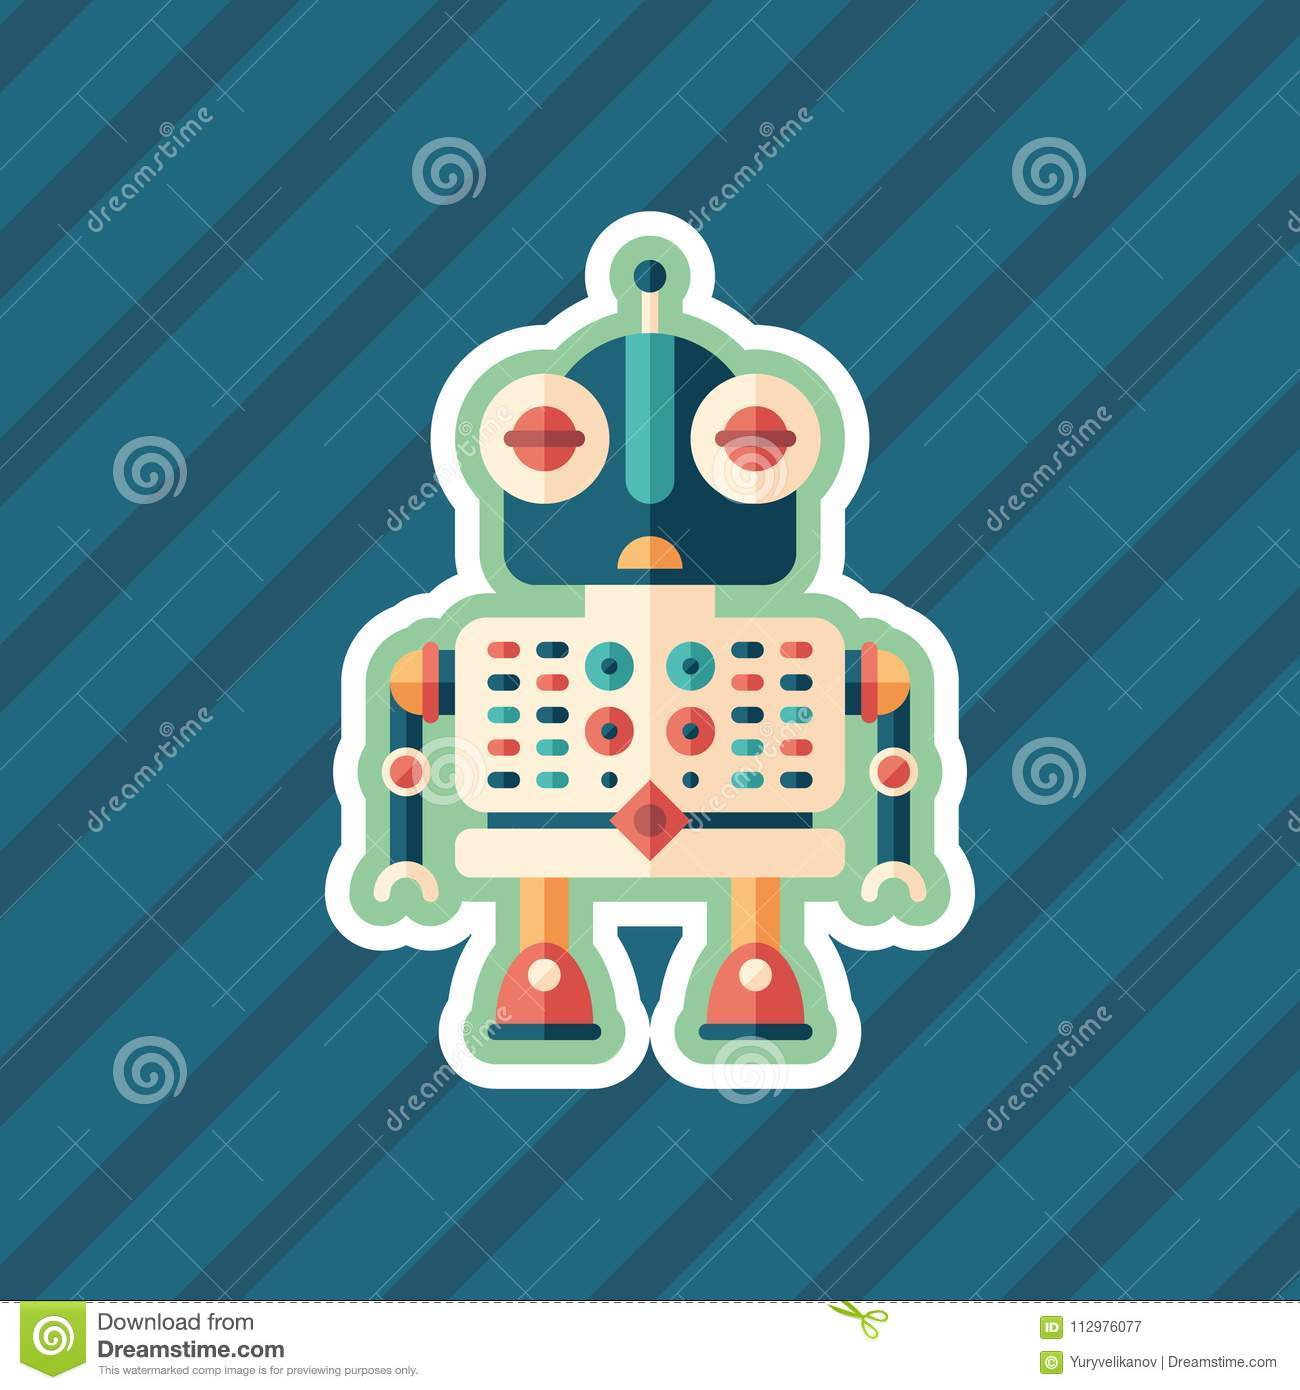 Robot assistant sticker flat icon with color background.